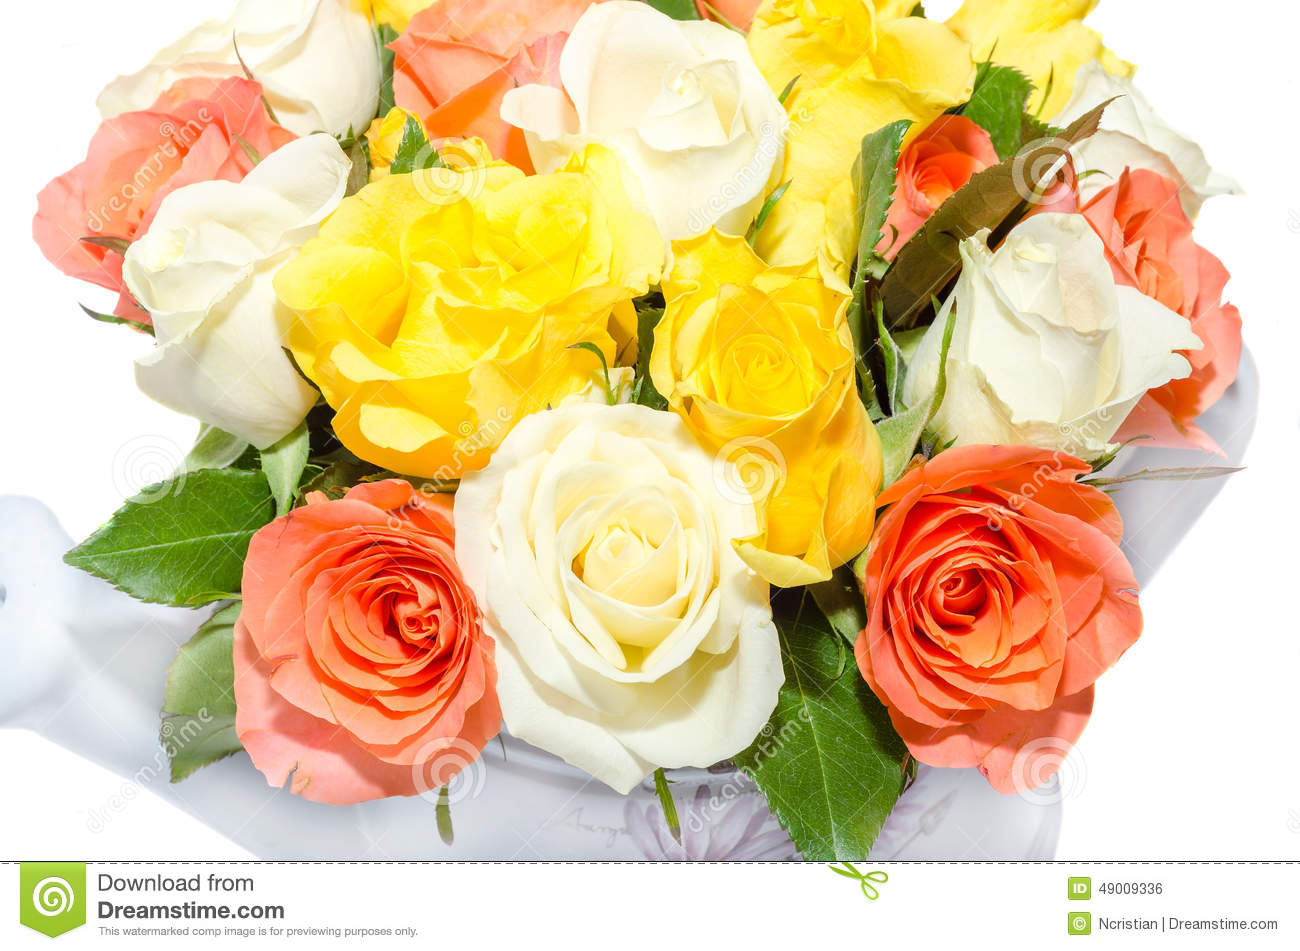 Valentines Day Flowers With White Orange Red And Yellow Roses